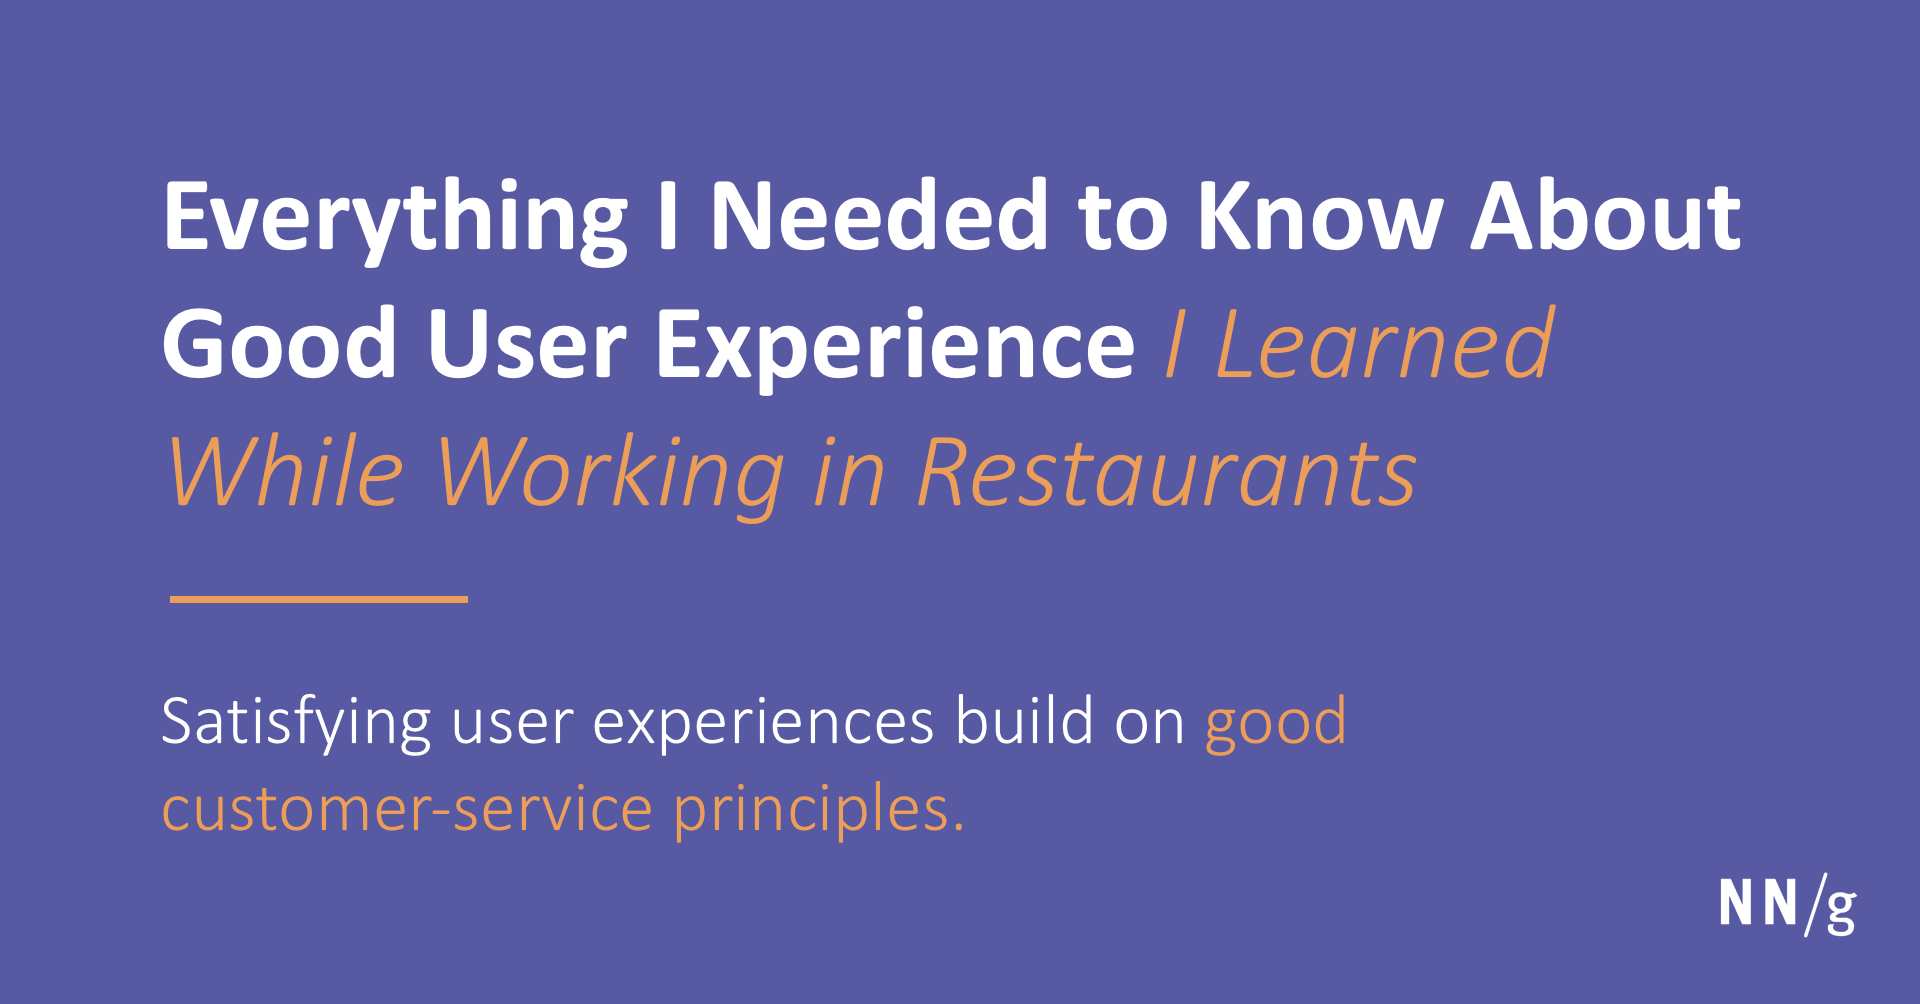 Good Ux What I Learned While Working In Restaurants